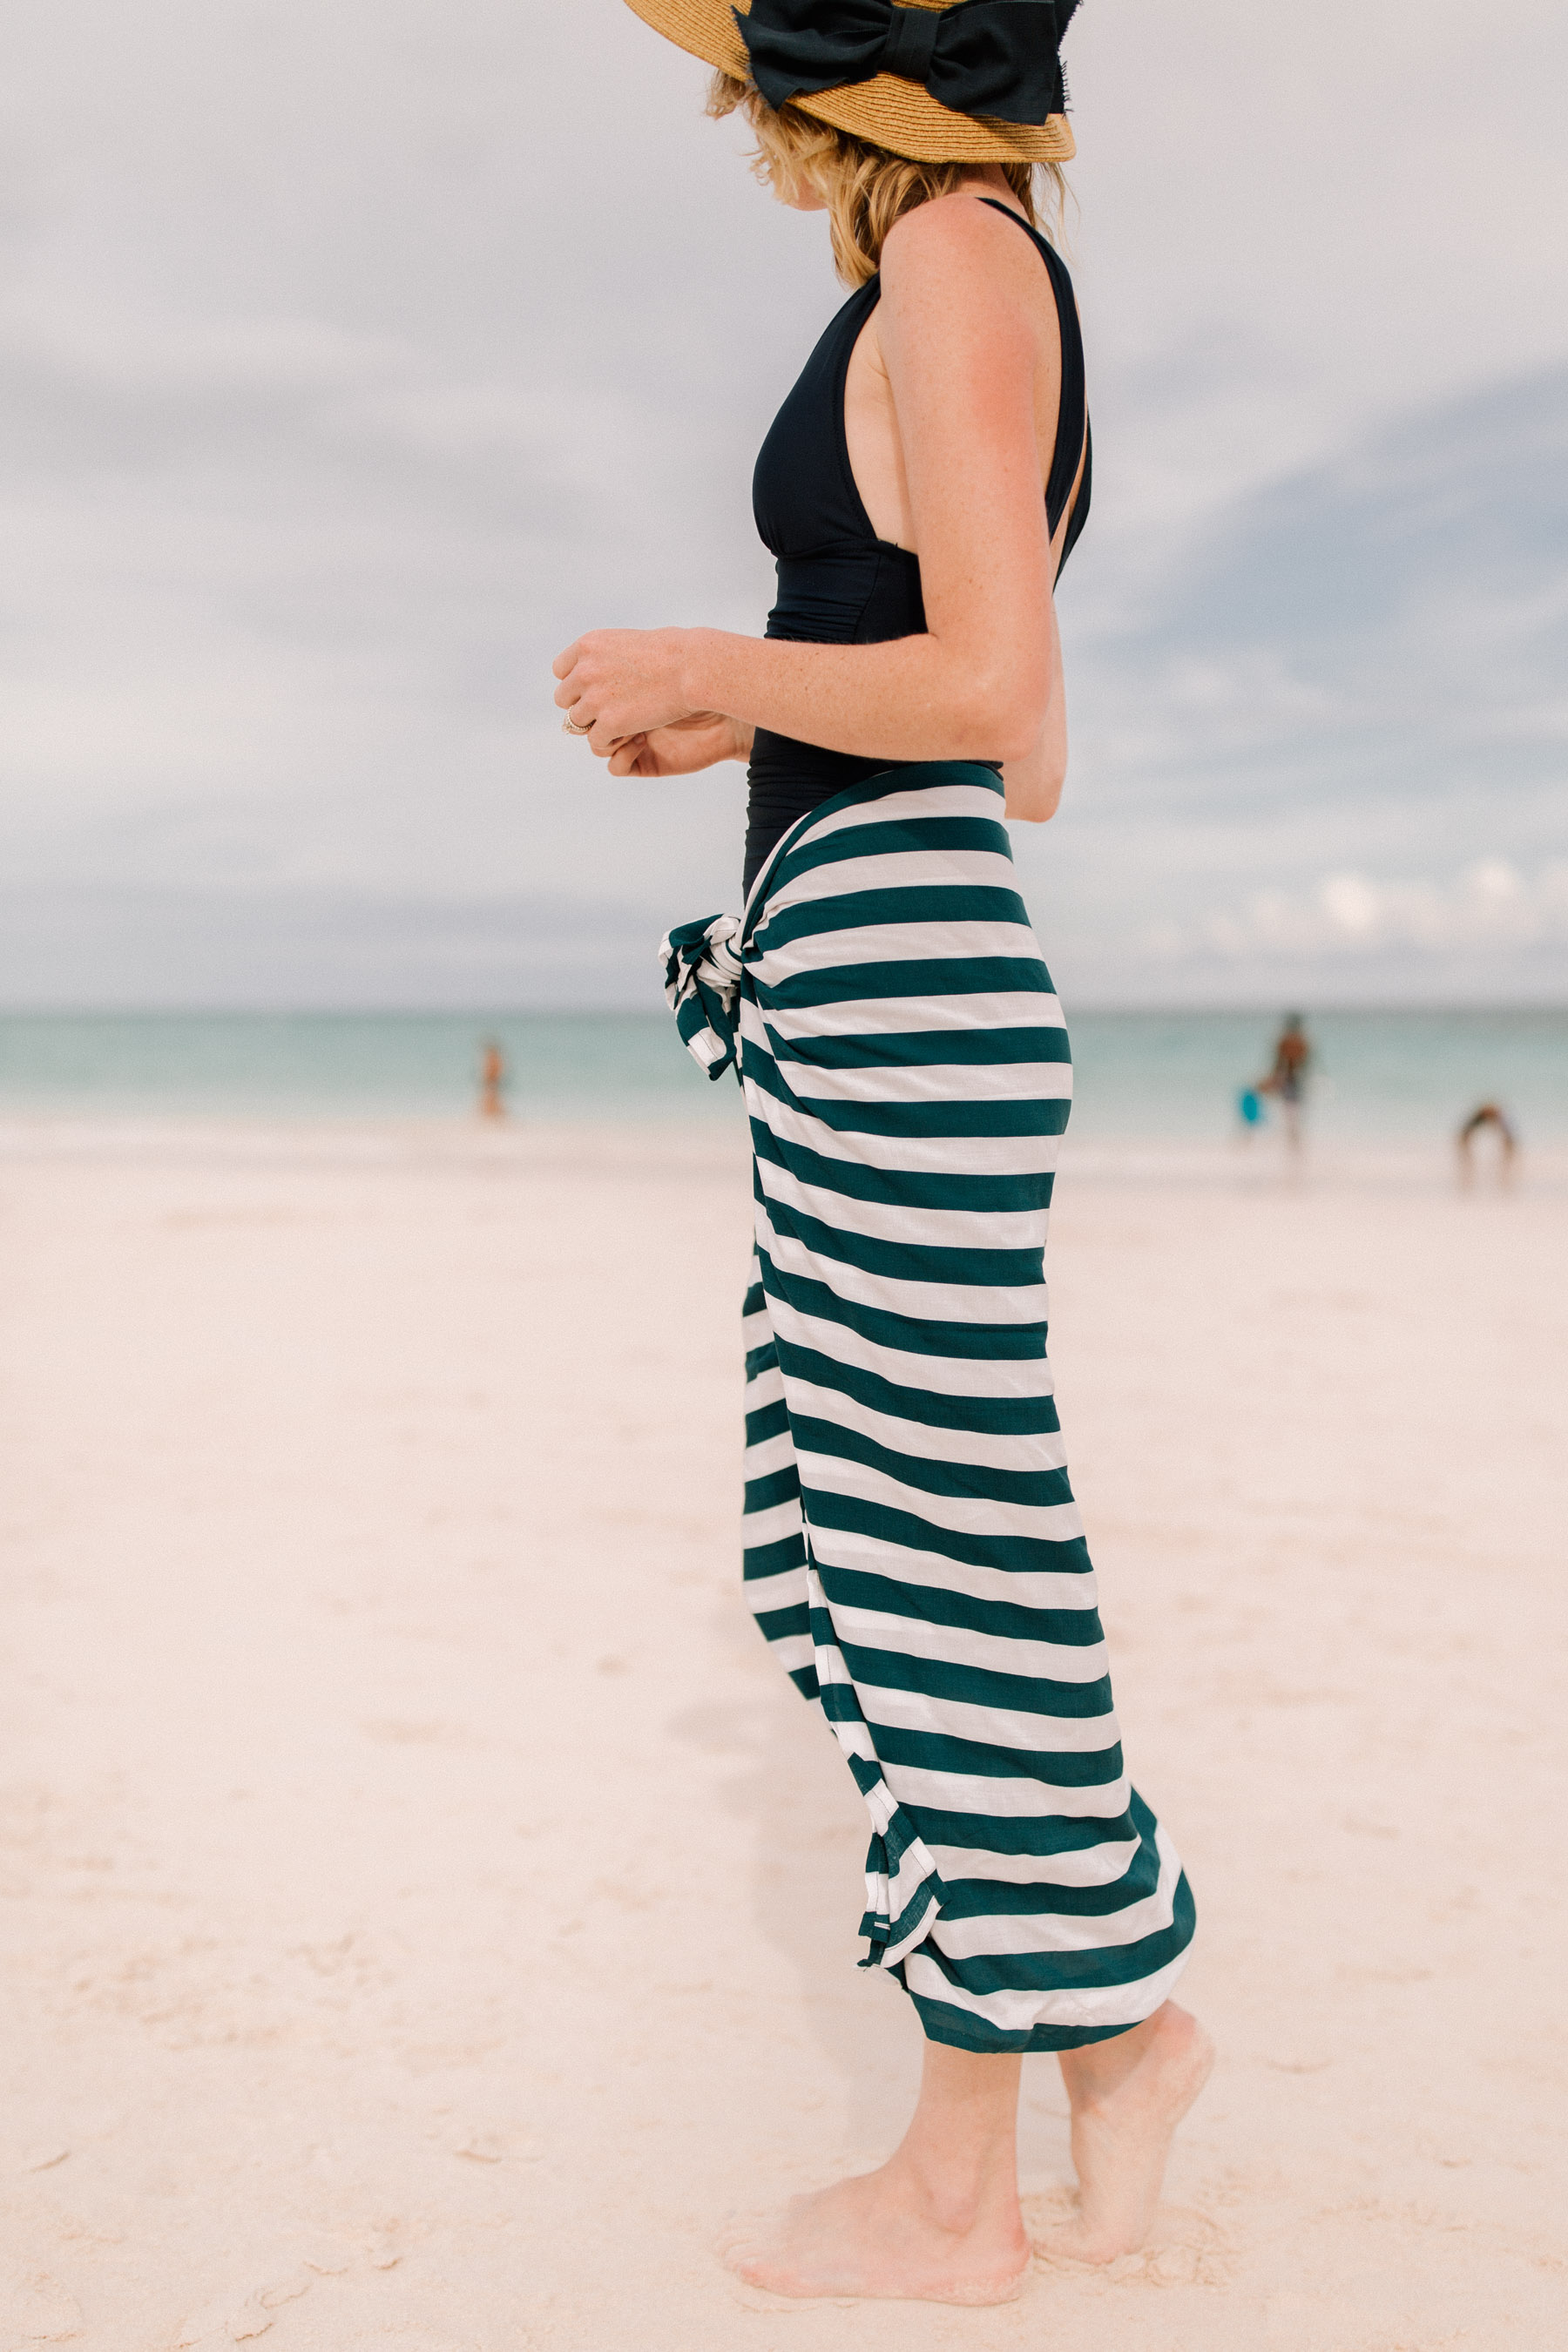 Packable Bow Hat- Tuckernuck +  Navy Striped Sarong / J.Crew Bathing Suit